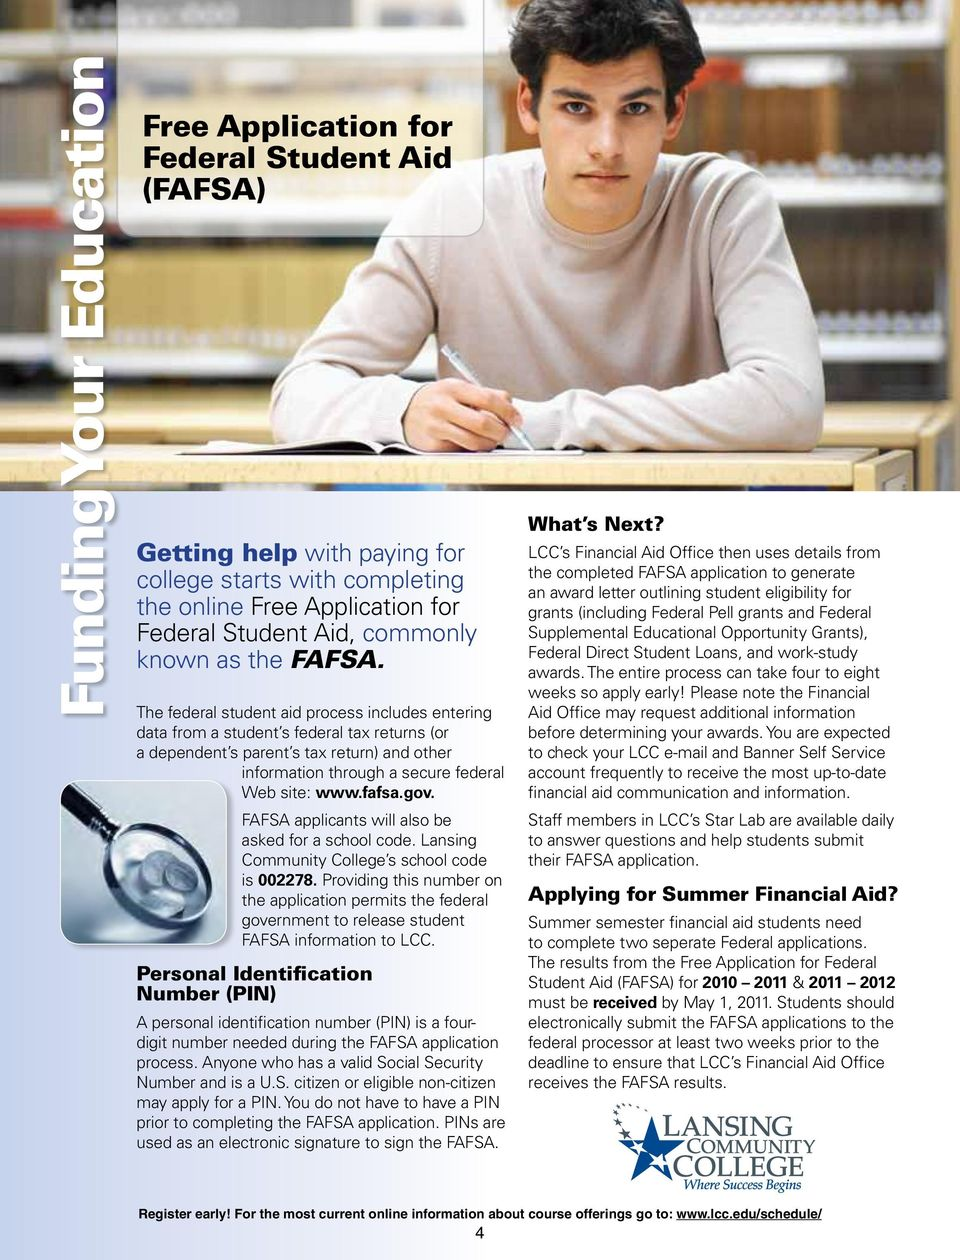 The federal student aid process includes entering data from a student s federal tax returns (or a dependent s parent s tax return) and other information through a secure federal Web site: www.fafsa.